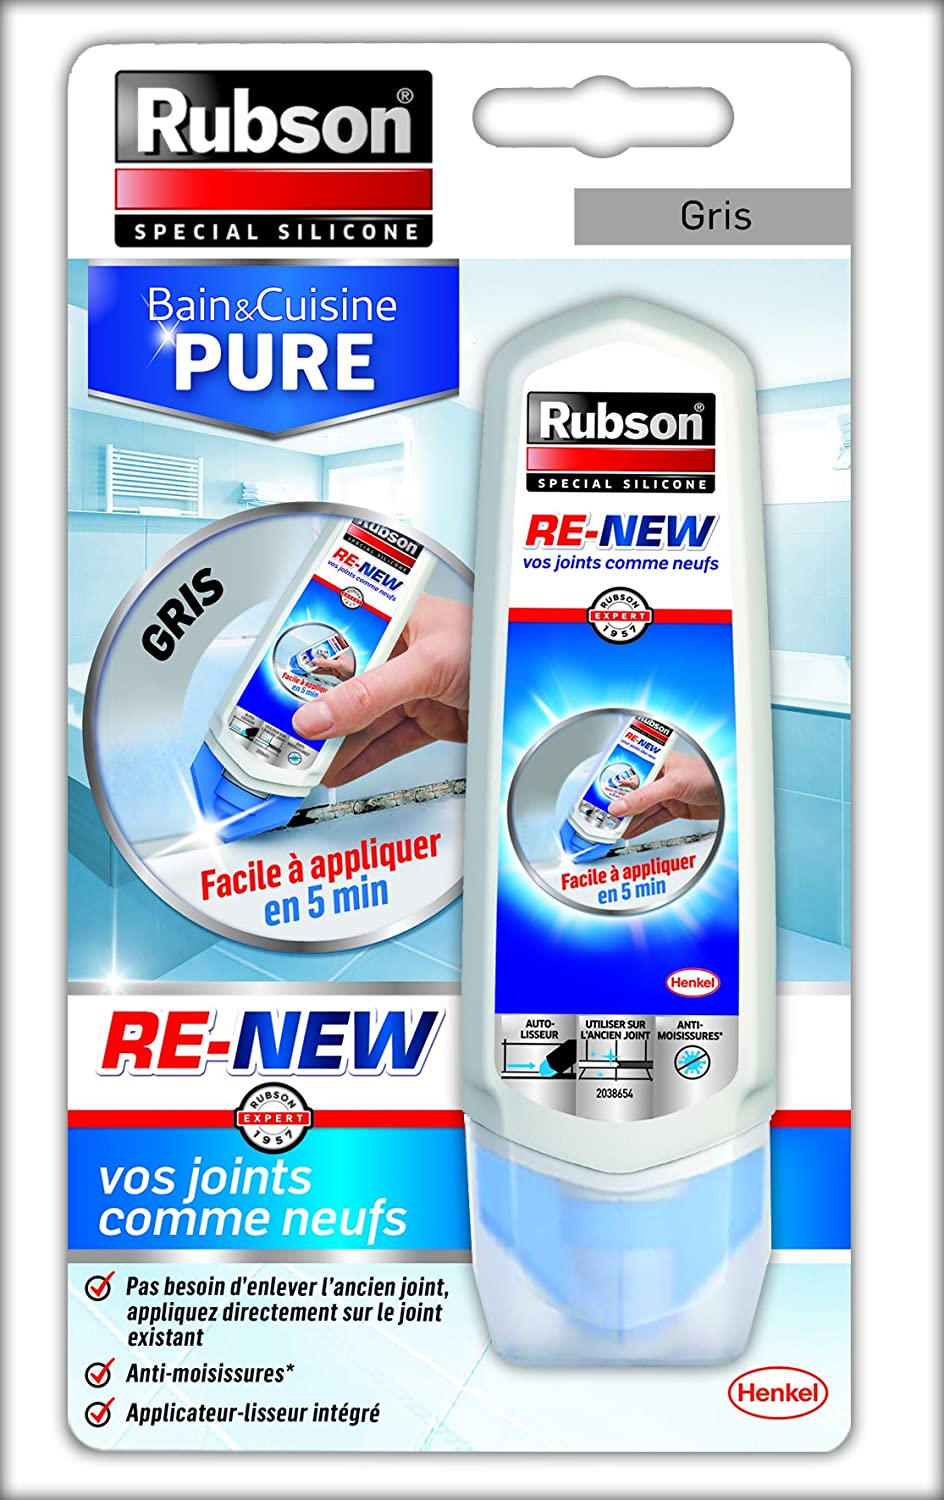 Rubson 16 Renew Sanitaire Vos Joints comme Neufs, Mastic B&C Pure  RE-New Gris Tube 16ml